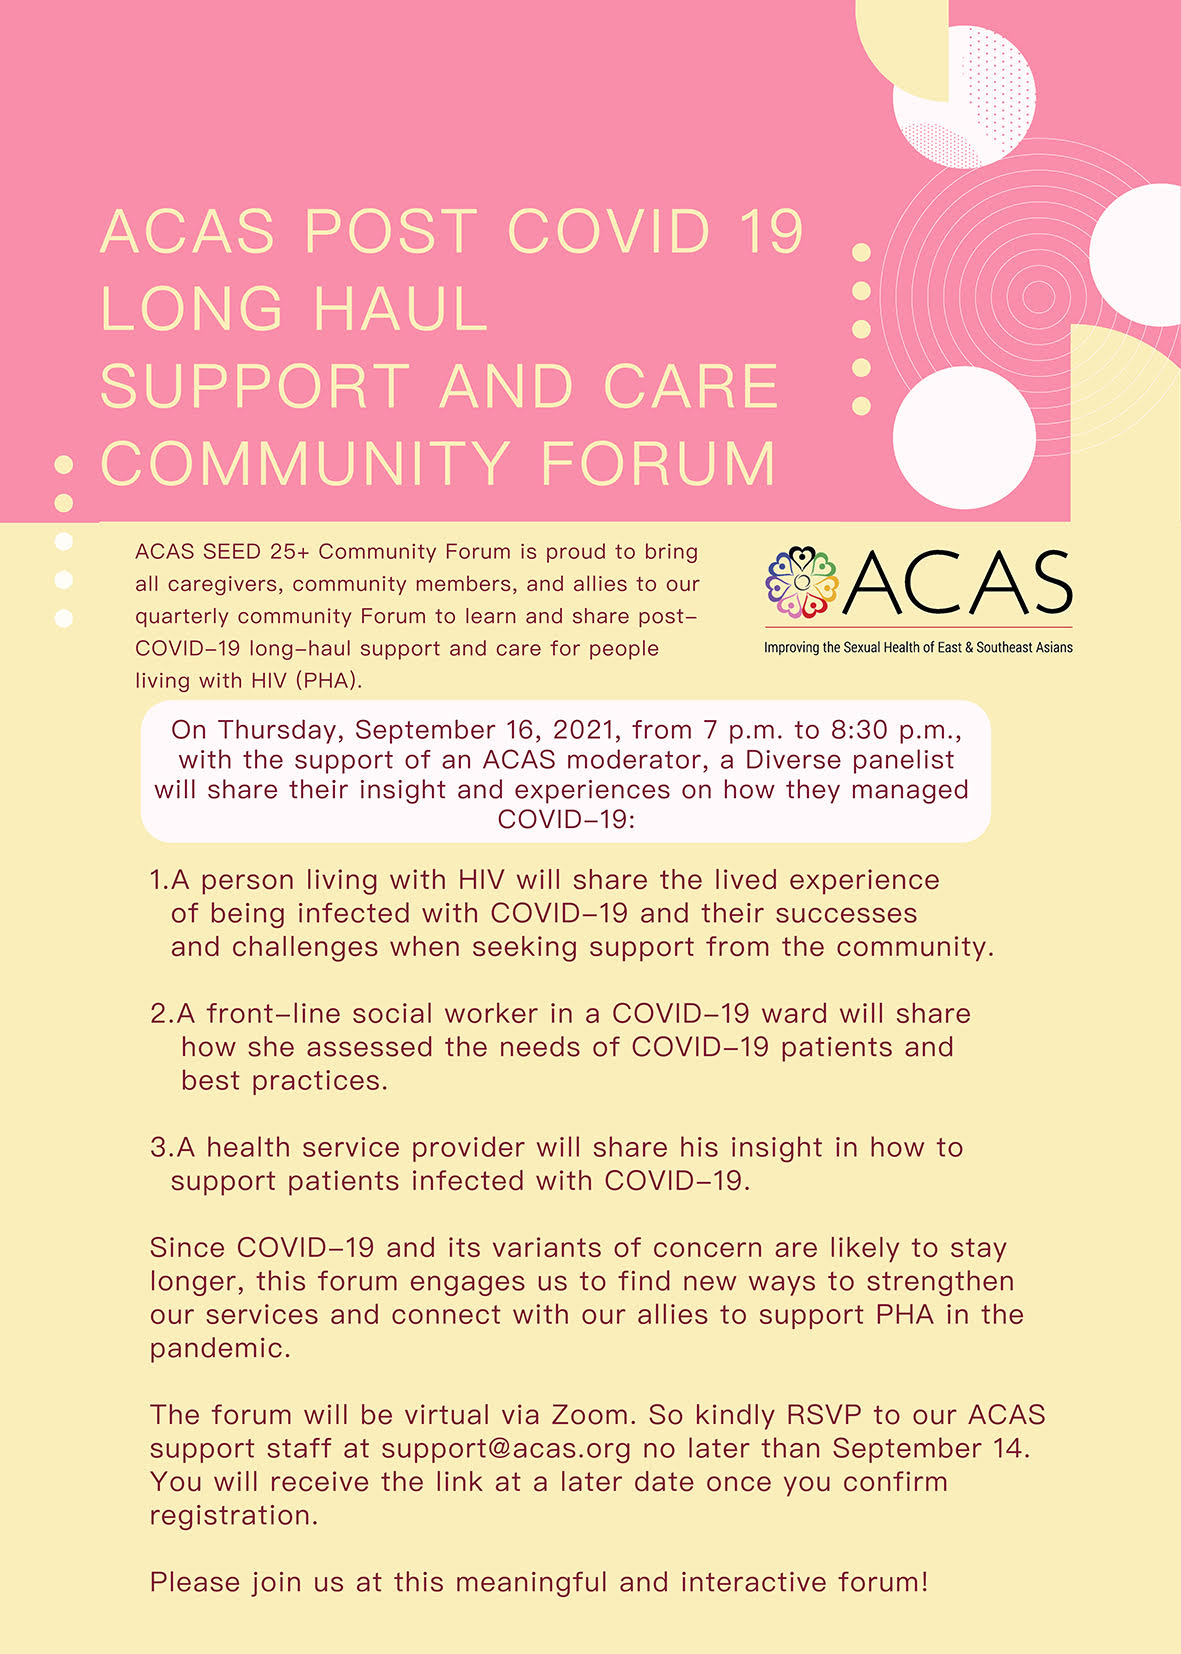 poster for seed25+ forum on covid19 long haul support